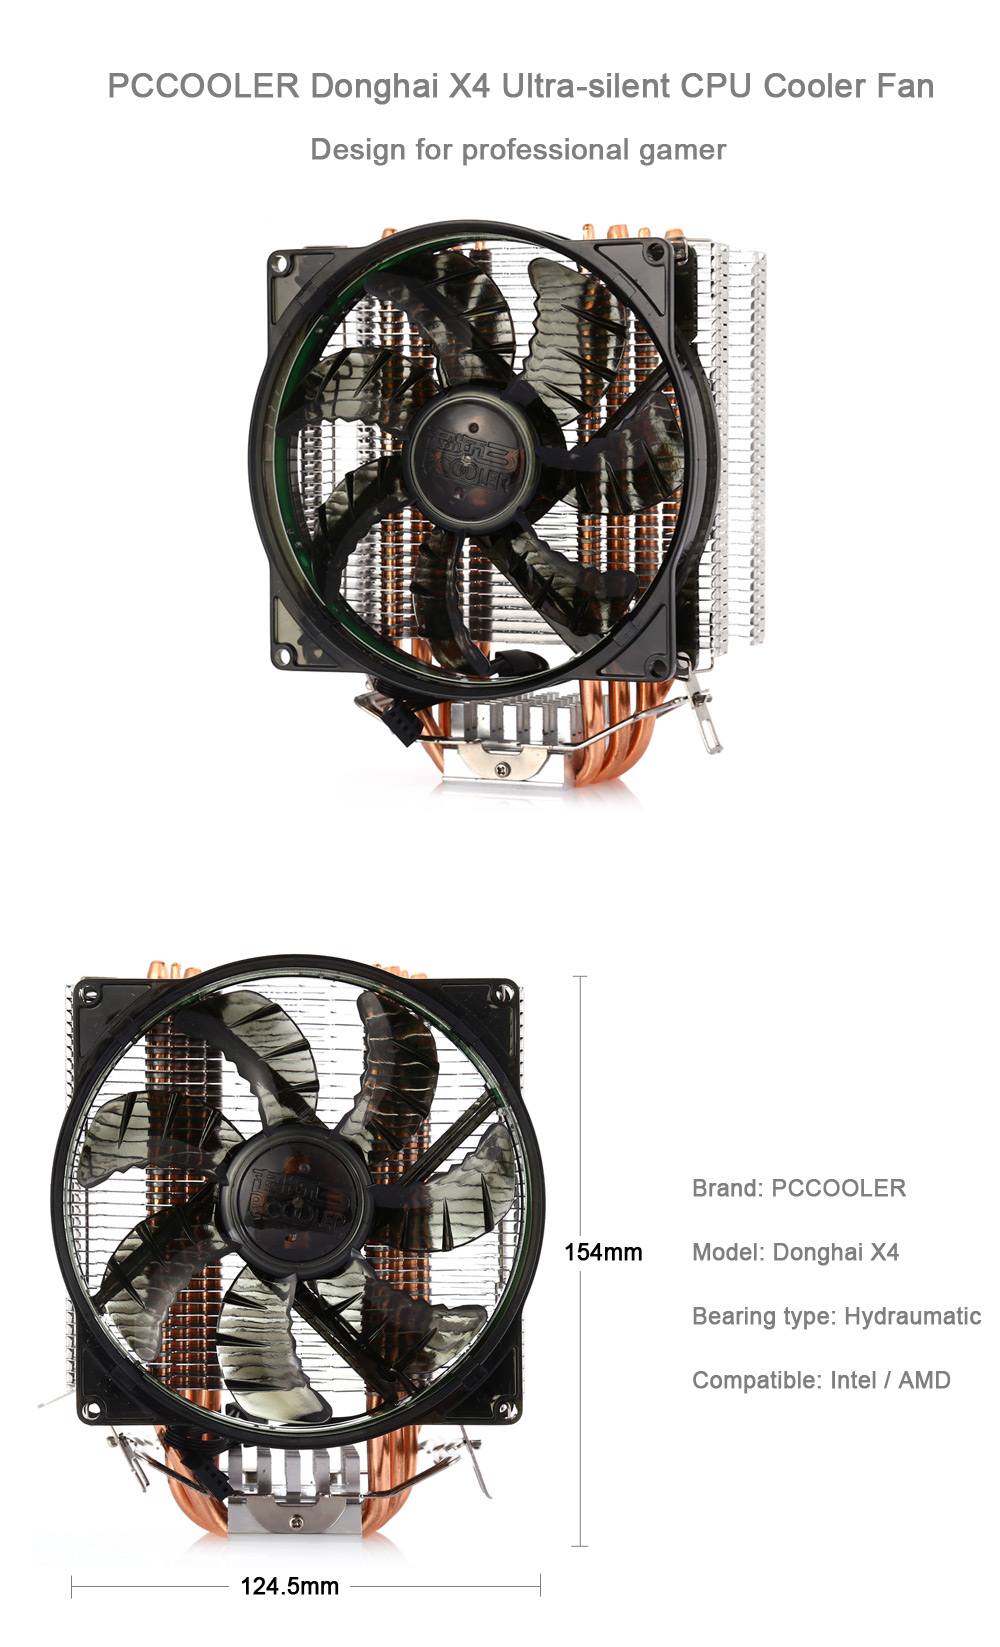 PCCOOLER Donghai X4 Desktop CPU Cooling Fan Compatible with Intel / AMD